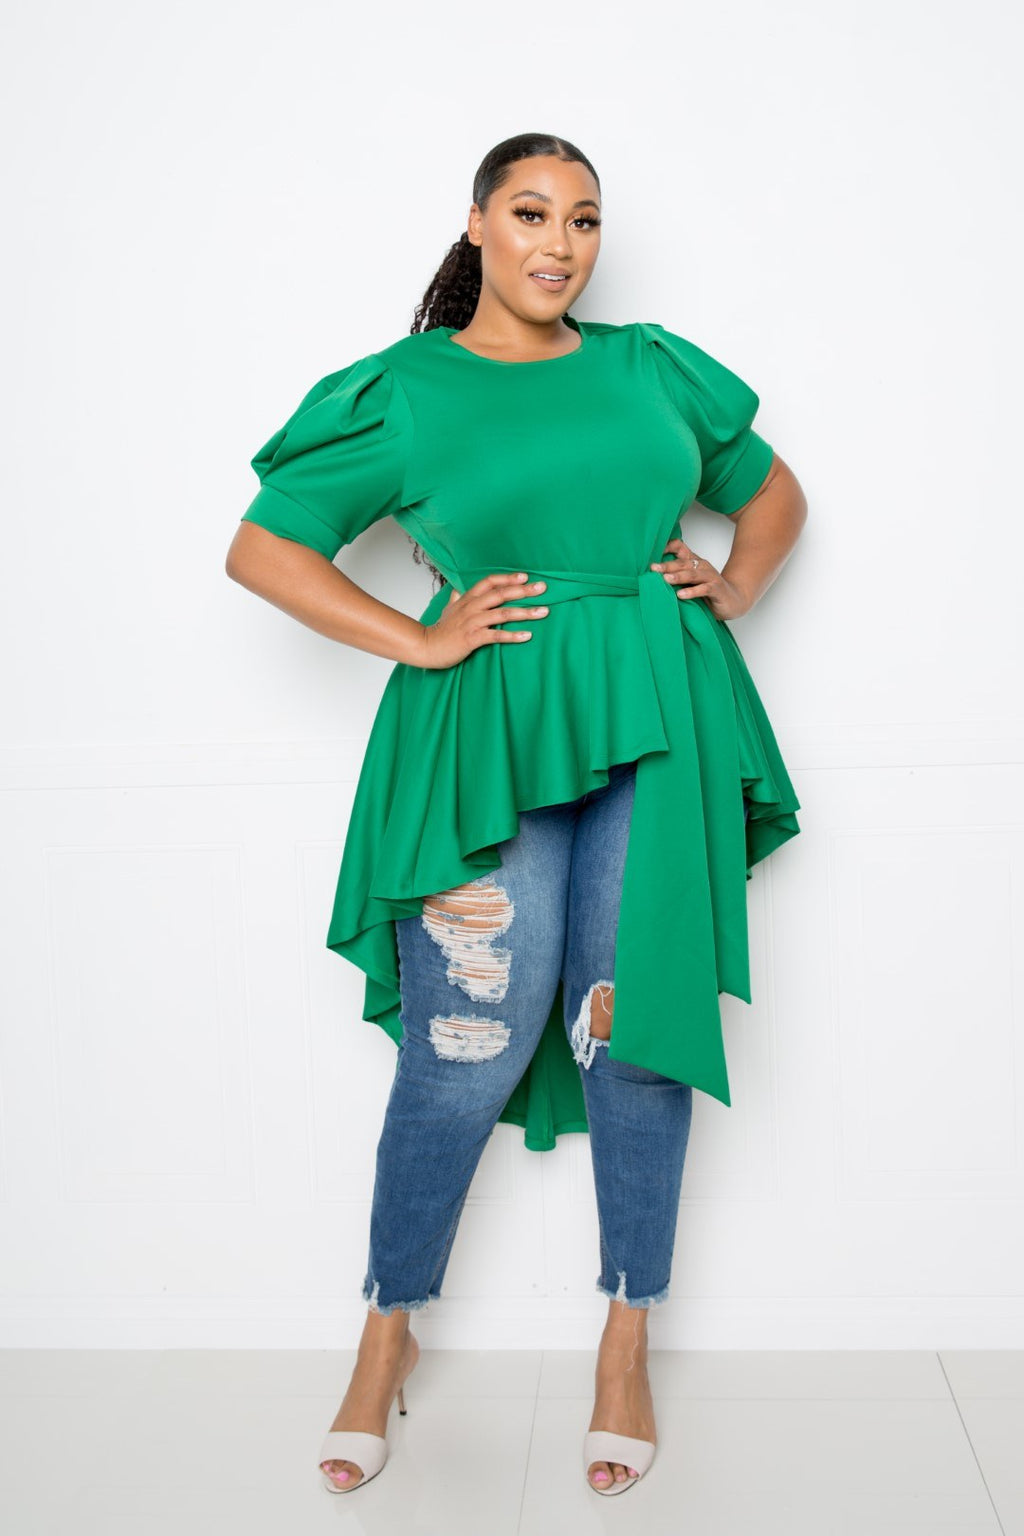 Hi-lo Peplum Top (dresses) 7 to 10 days delivery